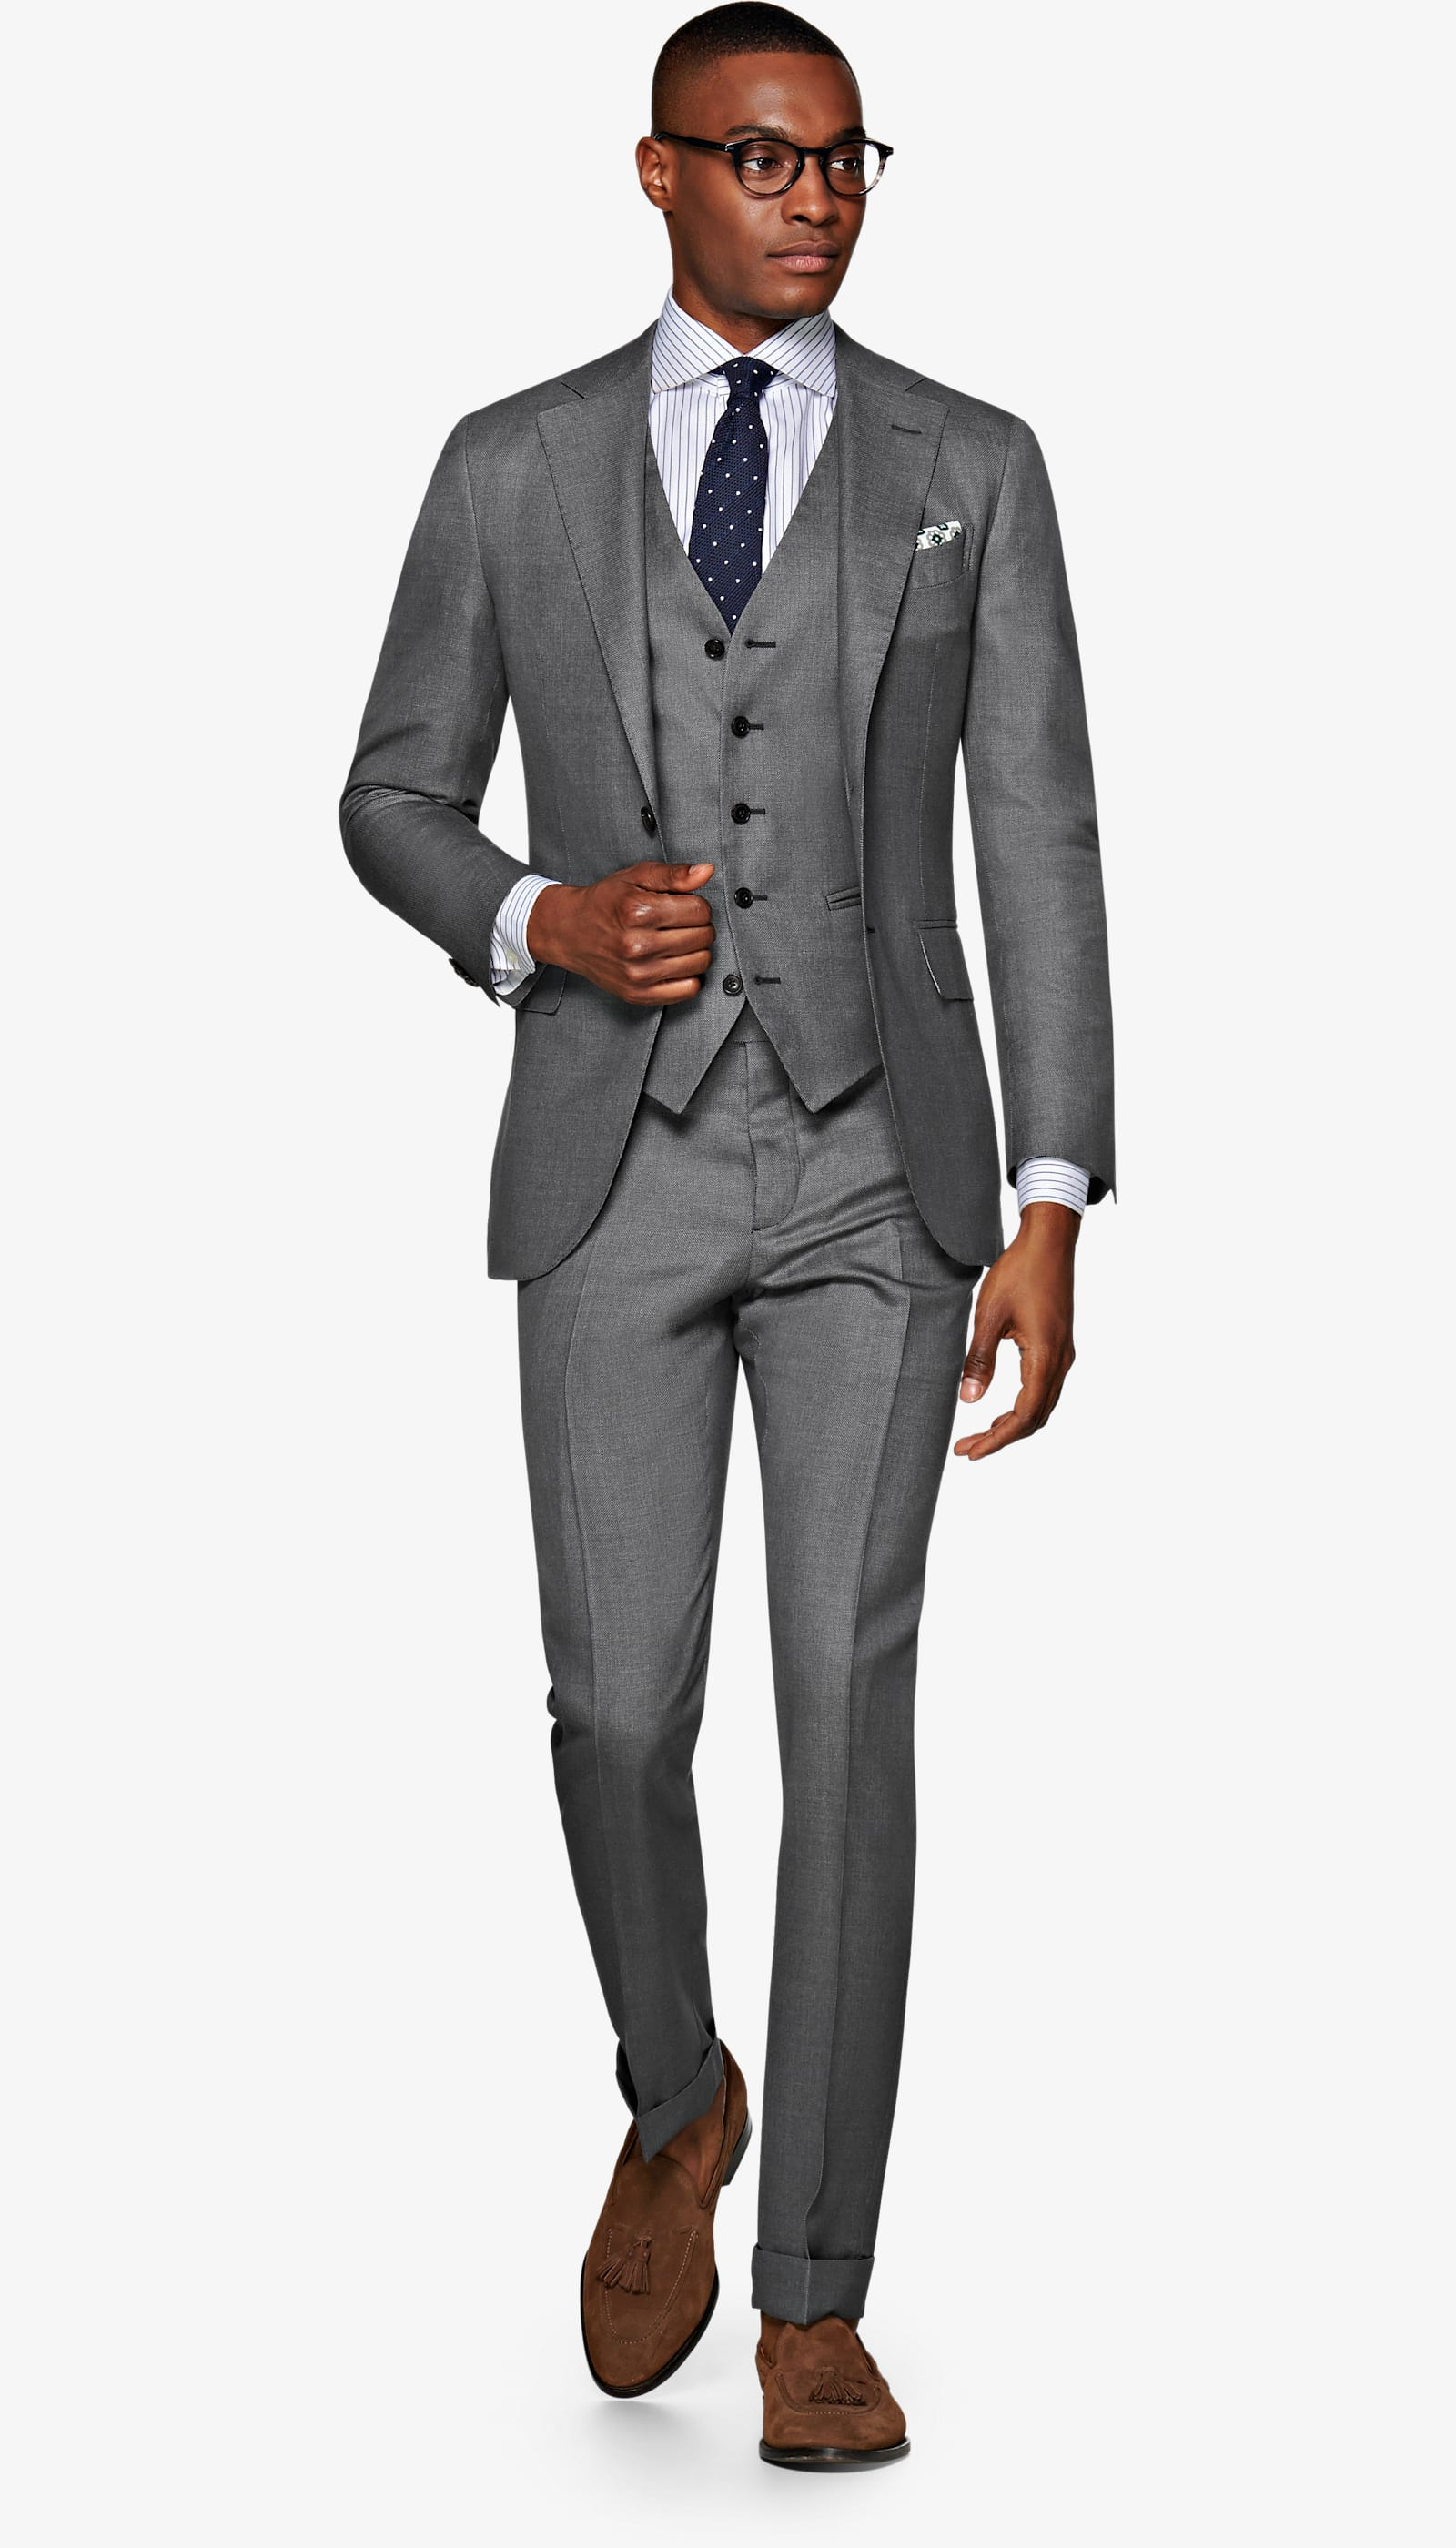 Suit Supply Jort Grey Bird's Eye Suit - A wool-silk blend 3-piece that is all baller and comes with a vest that can be worn with or without the jacket. This is the impact suit.